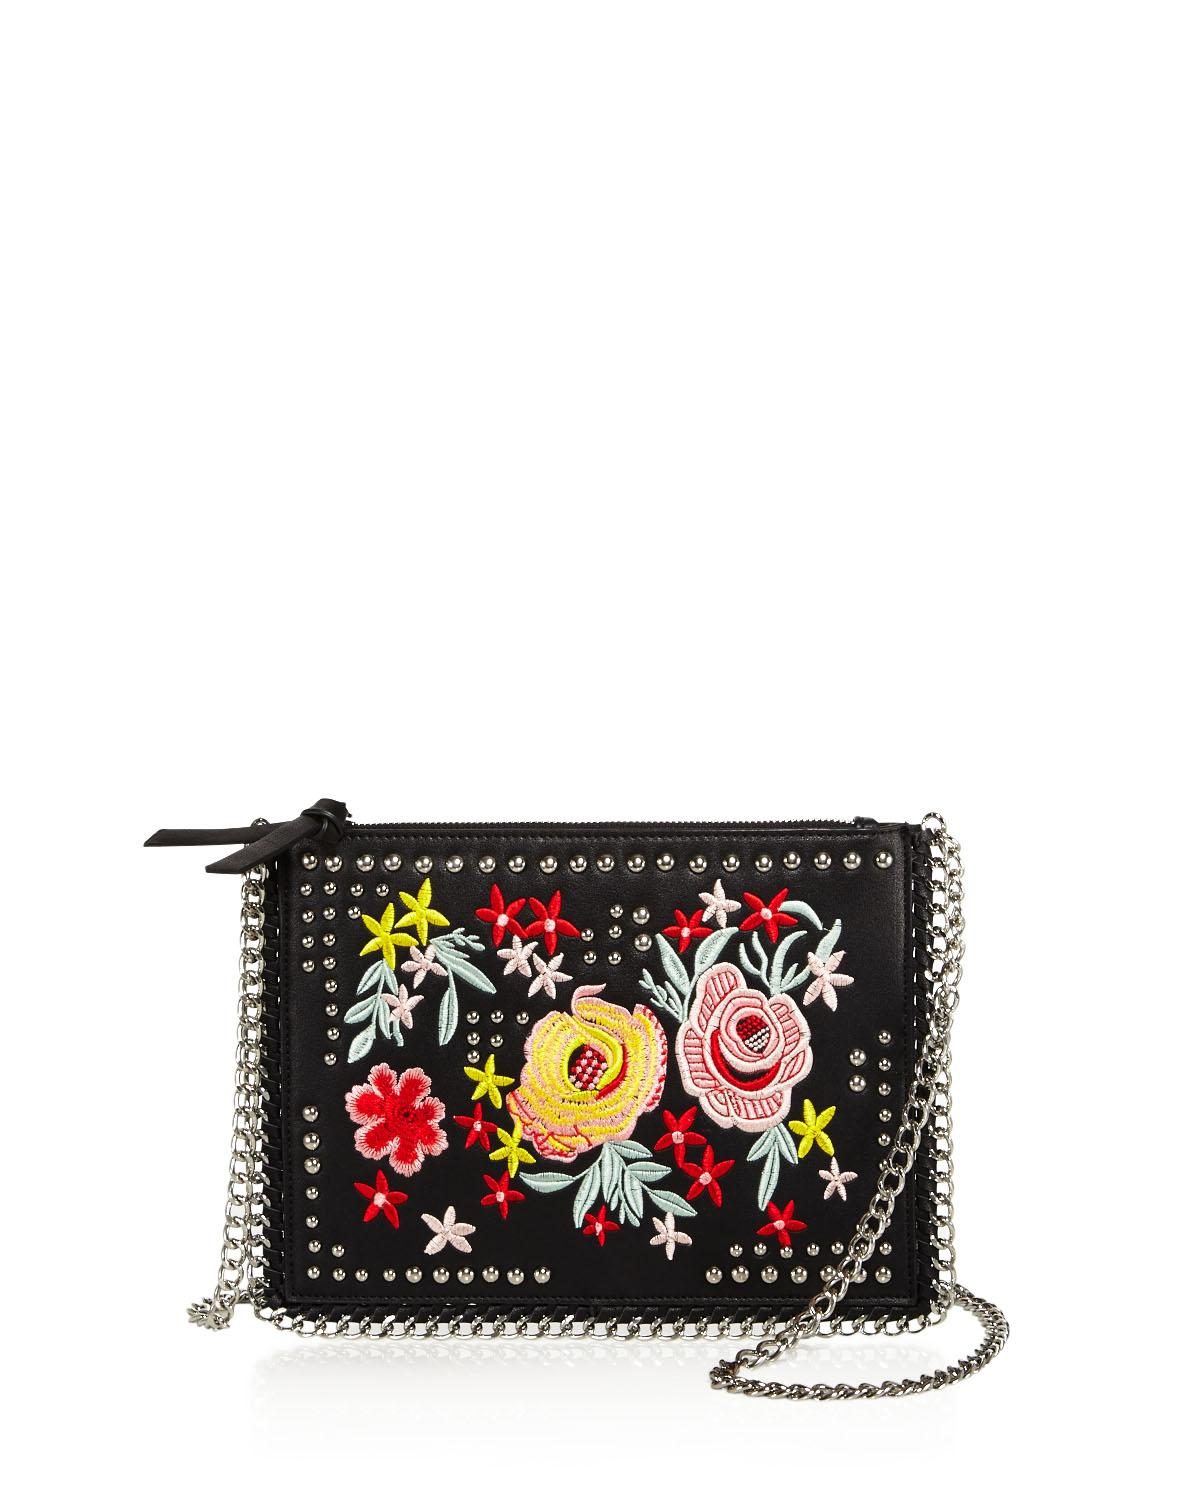 Sunset &amp;amp; Spring Floral Crossbody at Bloomingdale's // Price: $65.00 // (Image: Bloomingdale's // bloomingdales.com)<p></p>